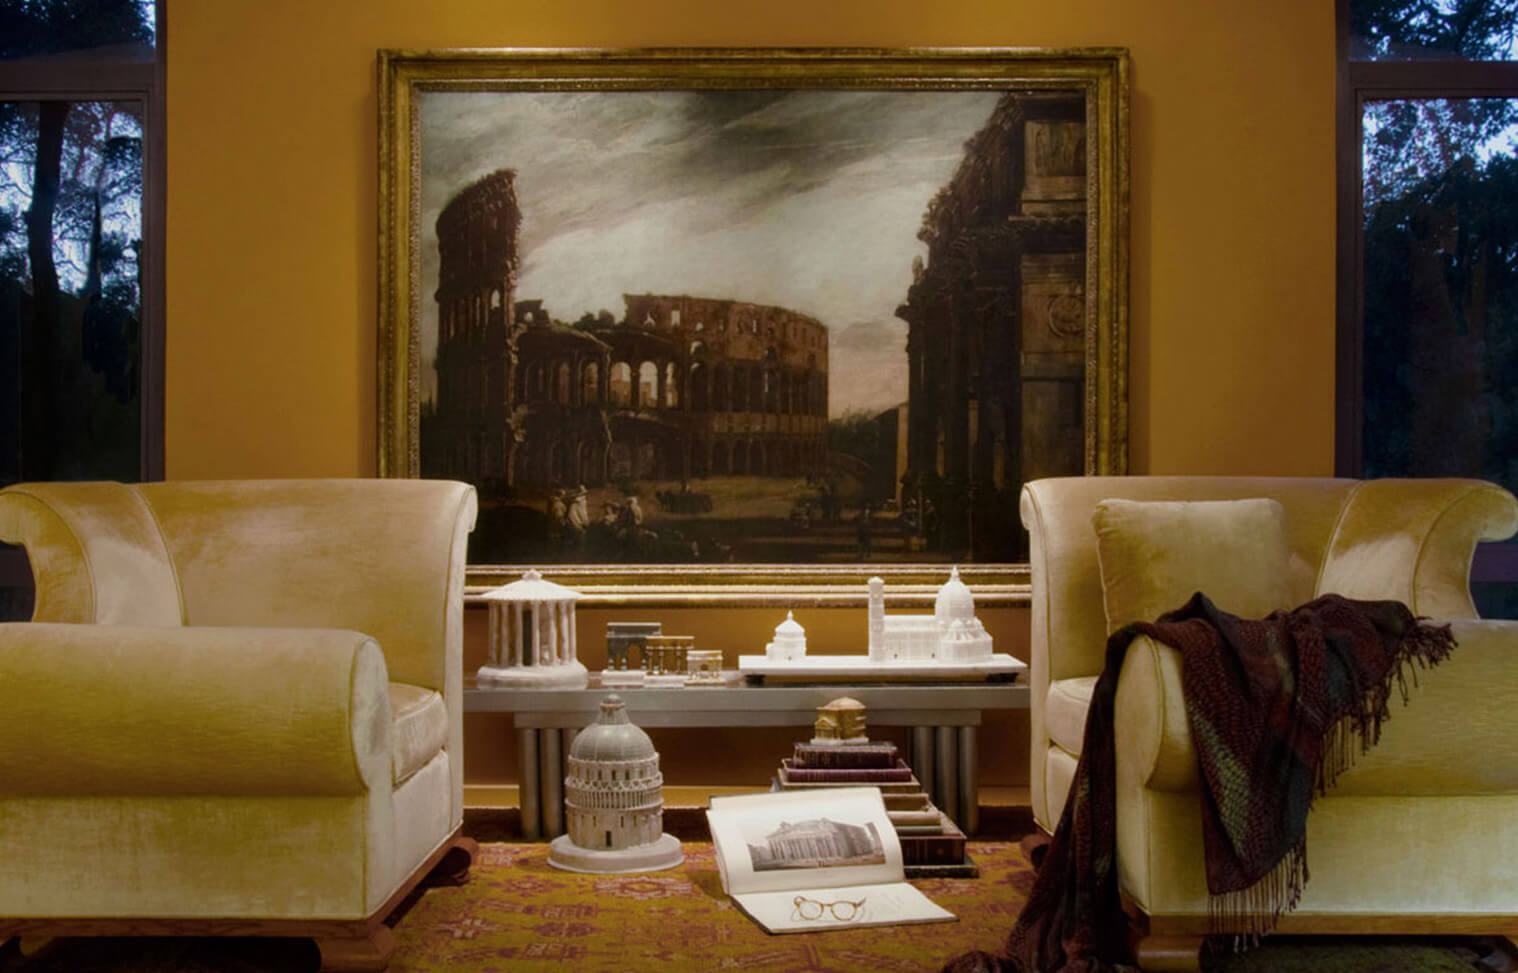 The Piraneseum Gallery extends to more domestic spaces, like this bedroom dominated by Codazzi's 17th Cenmtury View of the Colosseum in Rome.